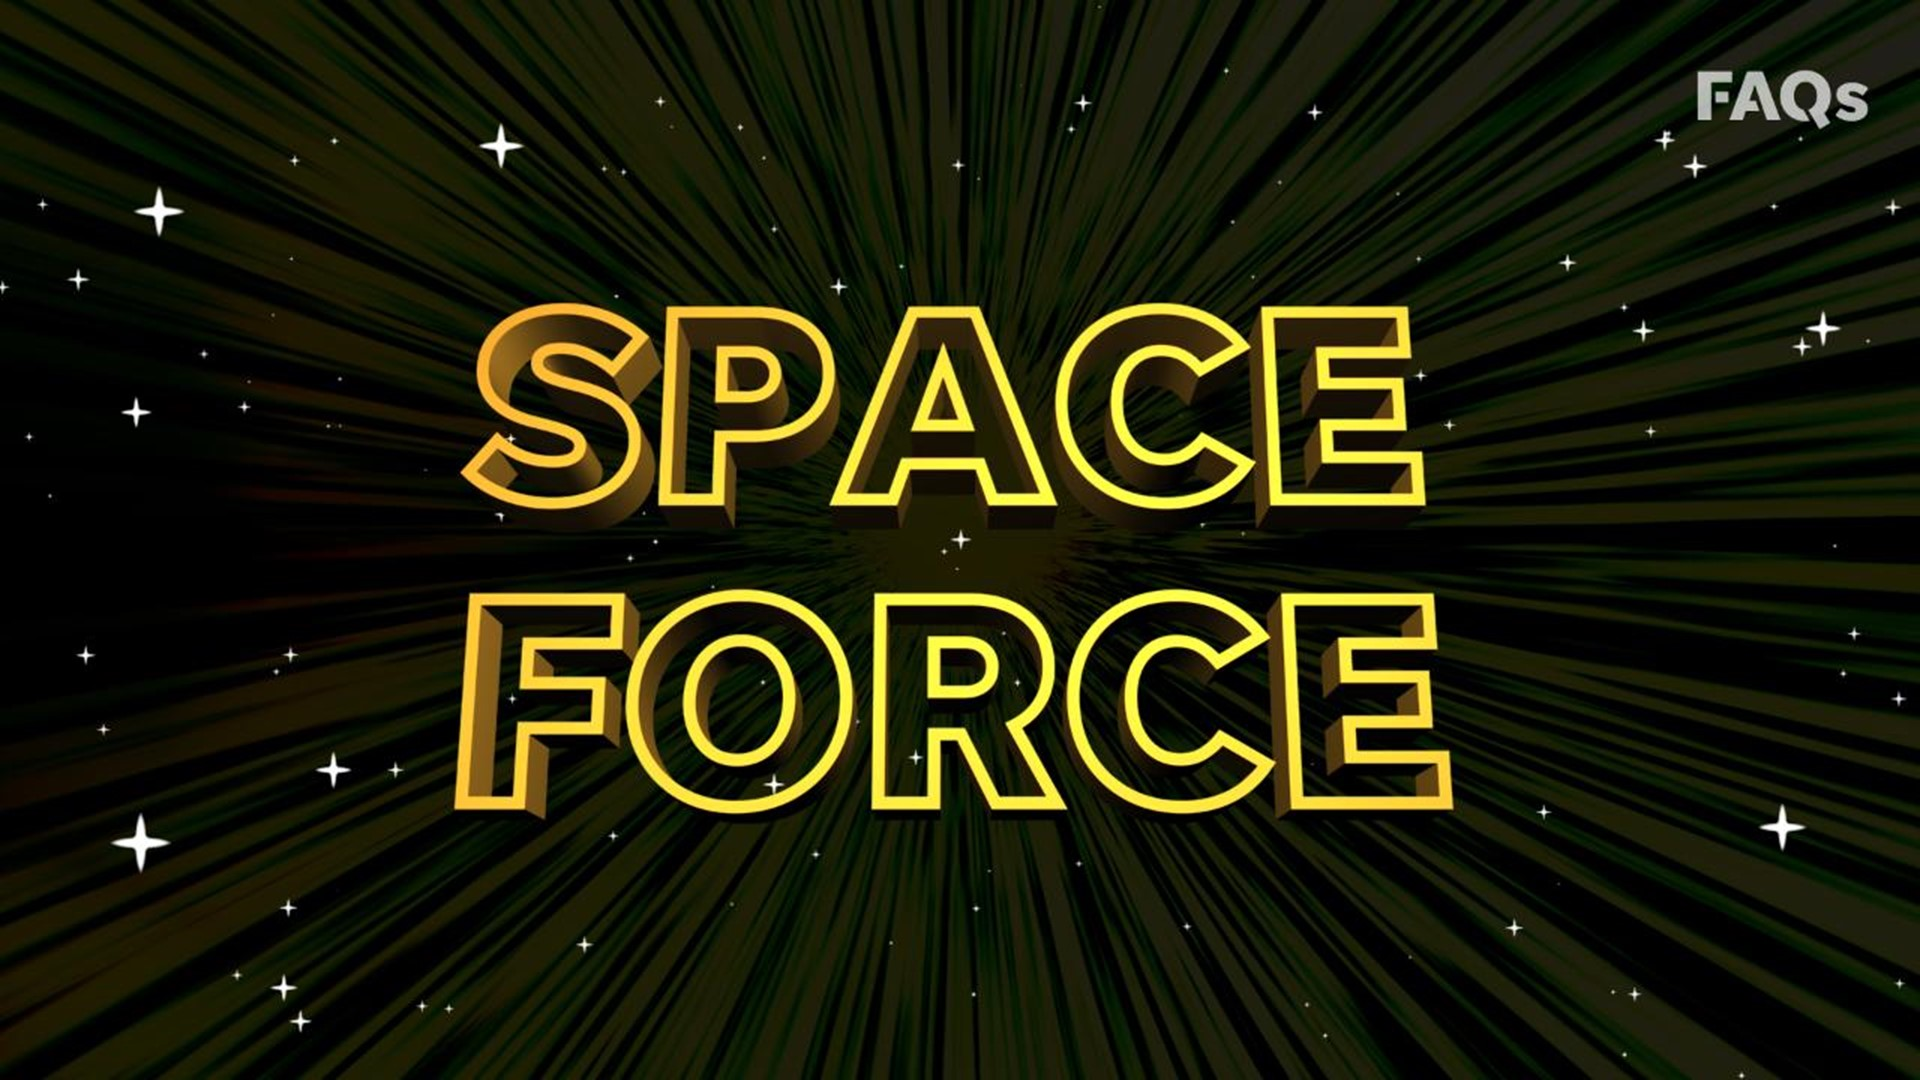 pentagon plans to launch trump u0026 39 s space force as a separate